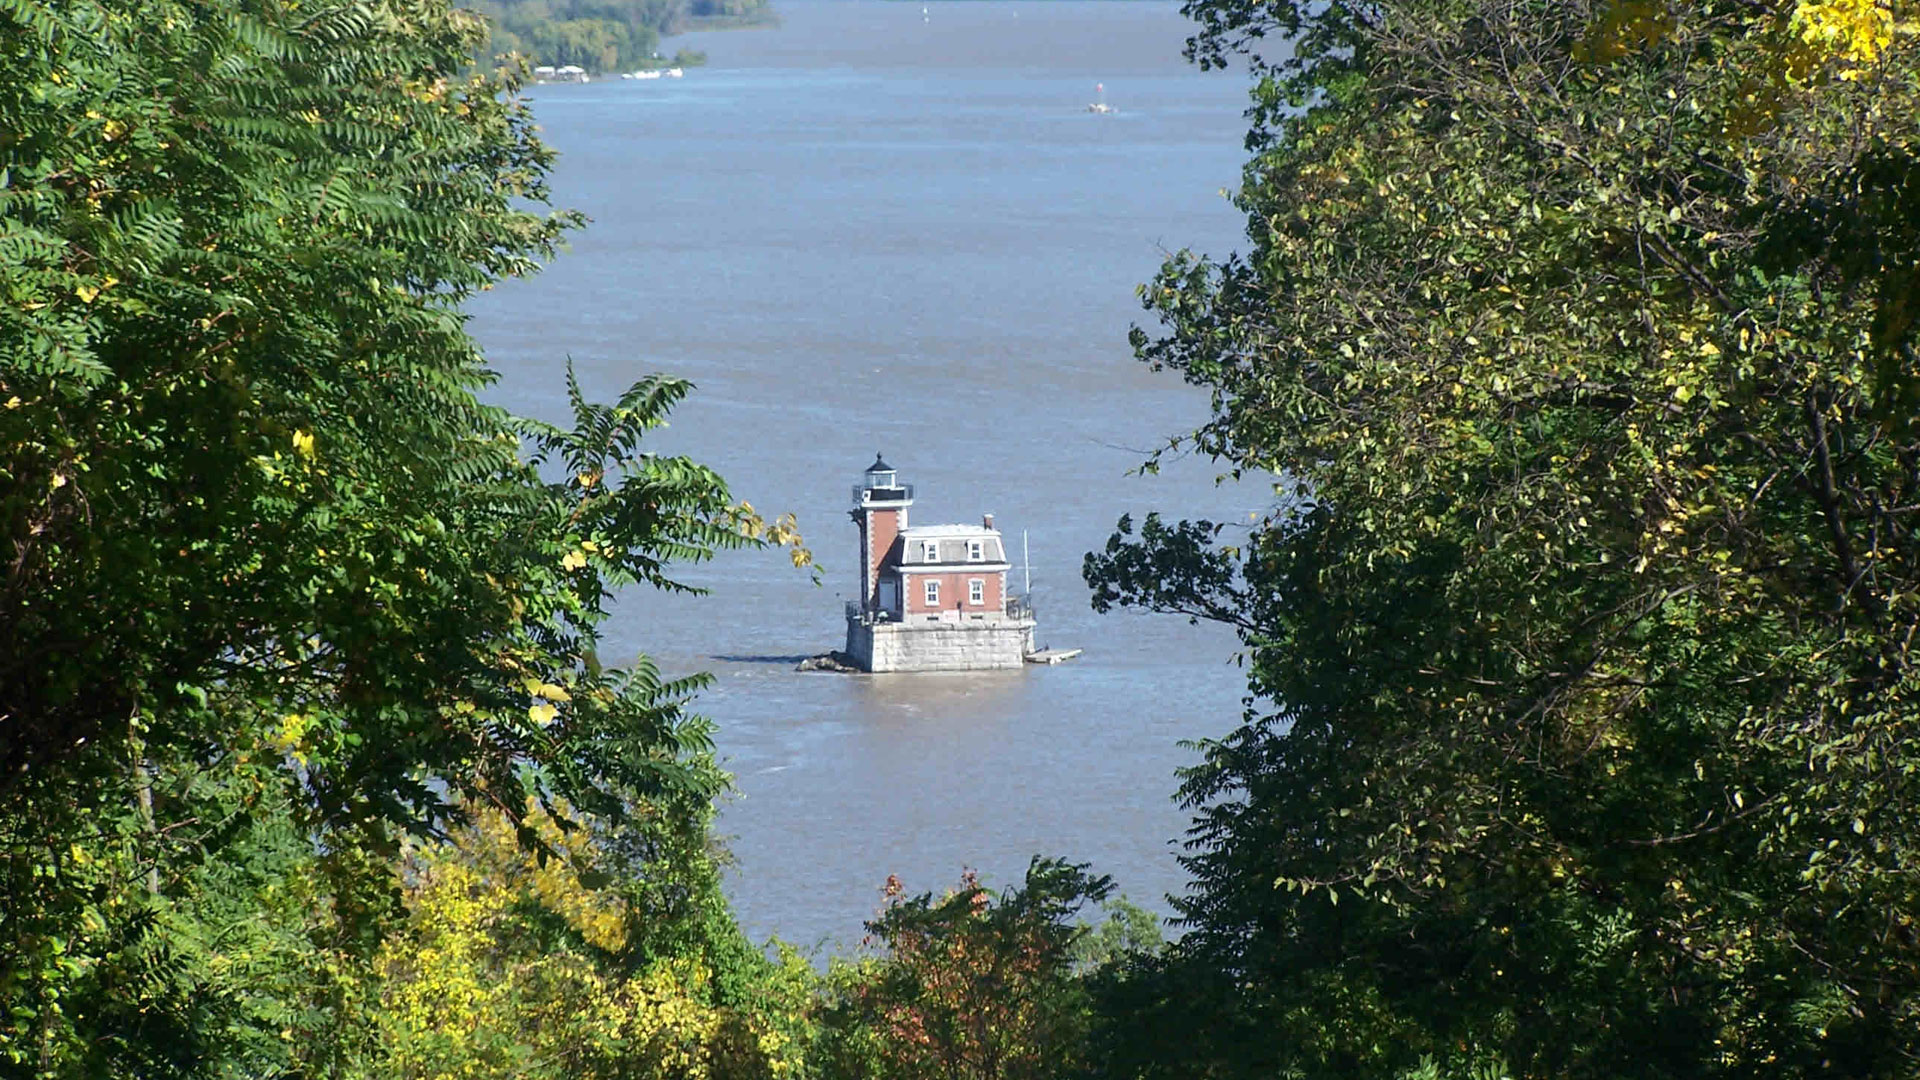 Lighthouse in the Hudson River.